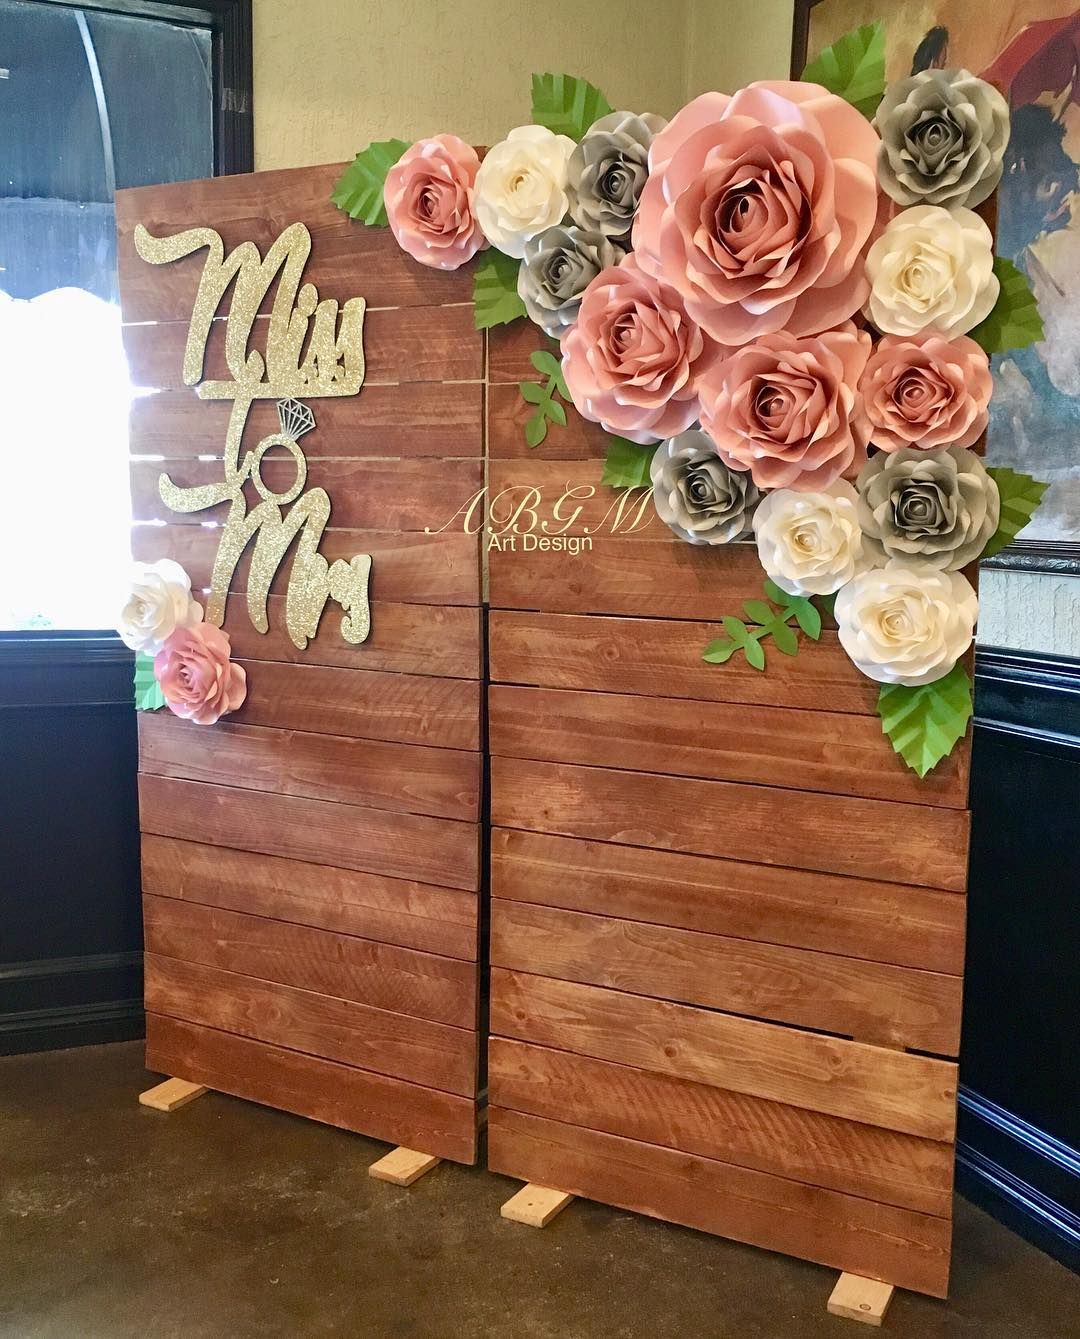 Miss to Mrs PAPER ROSES BACKDROP 💖🍃 misstomrs vintage chic ...